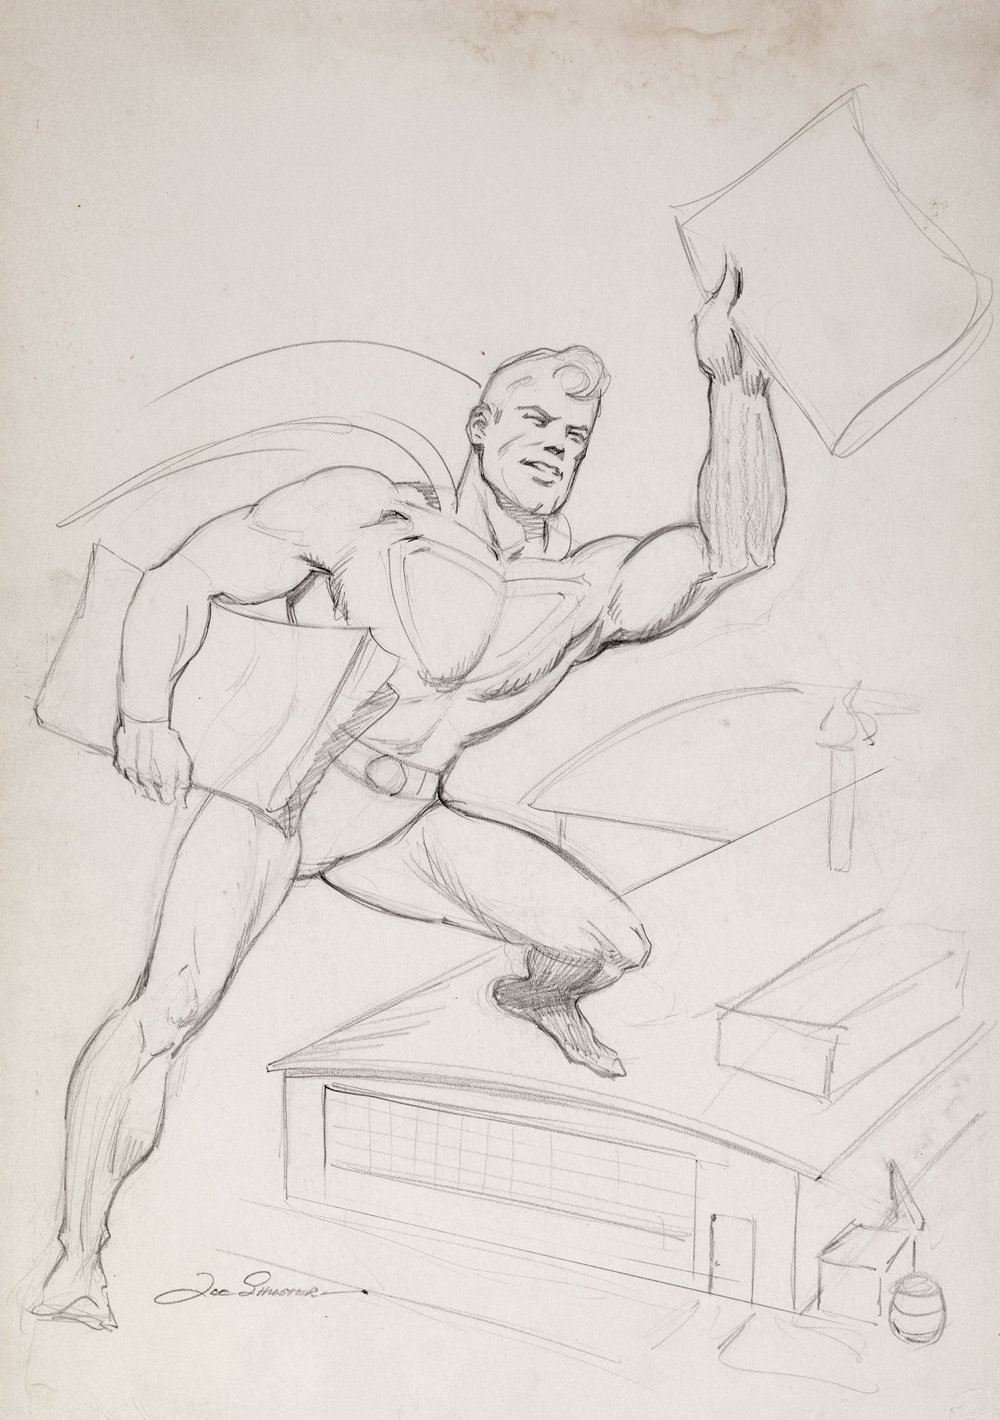 Superman Flying, Delivering Newspapers Illustration (Large Art) 1940s